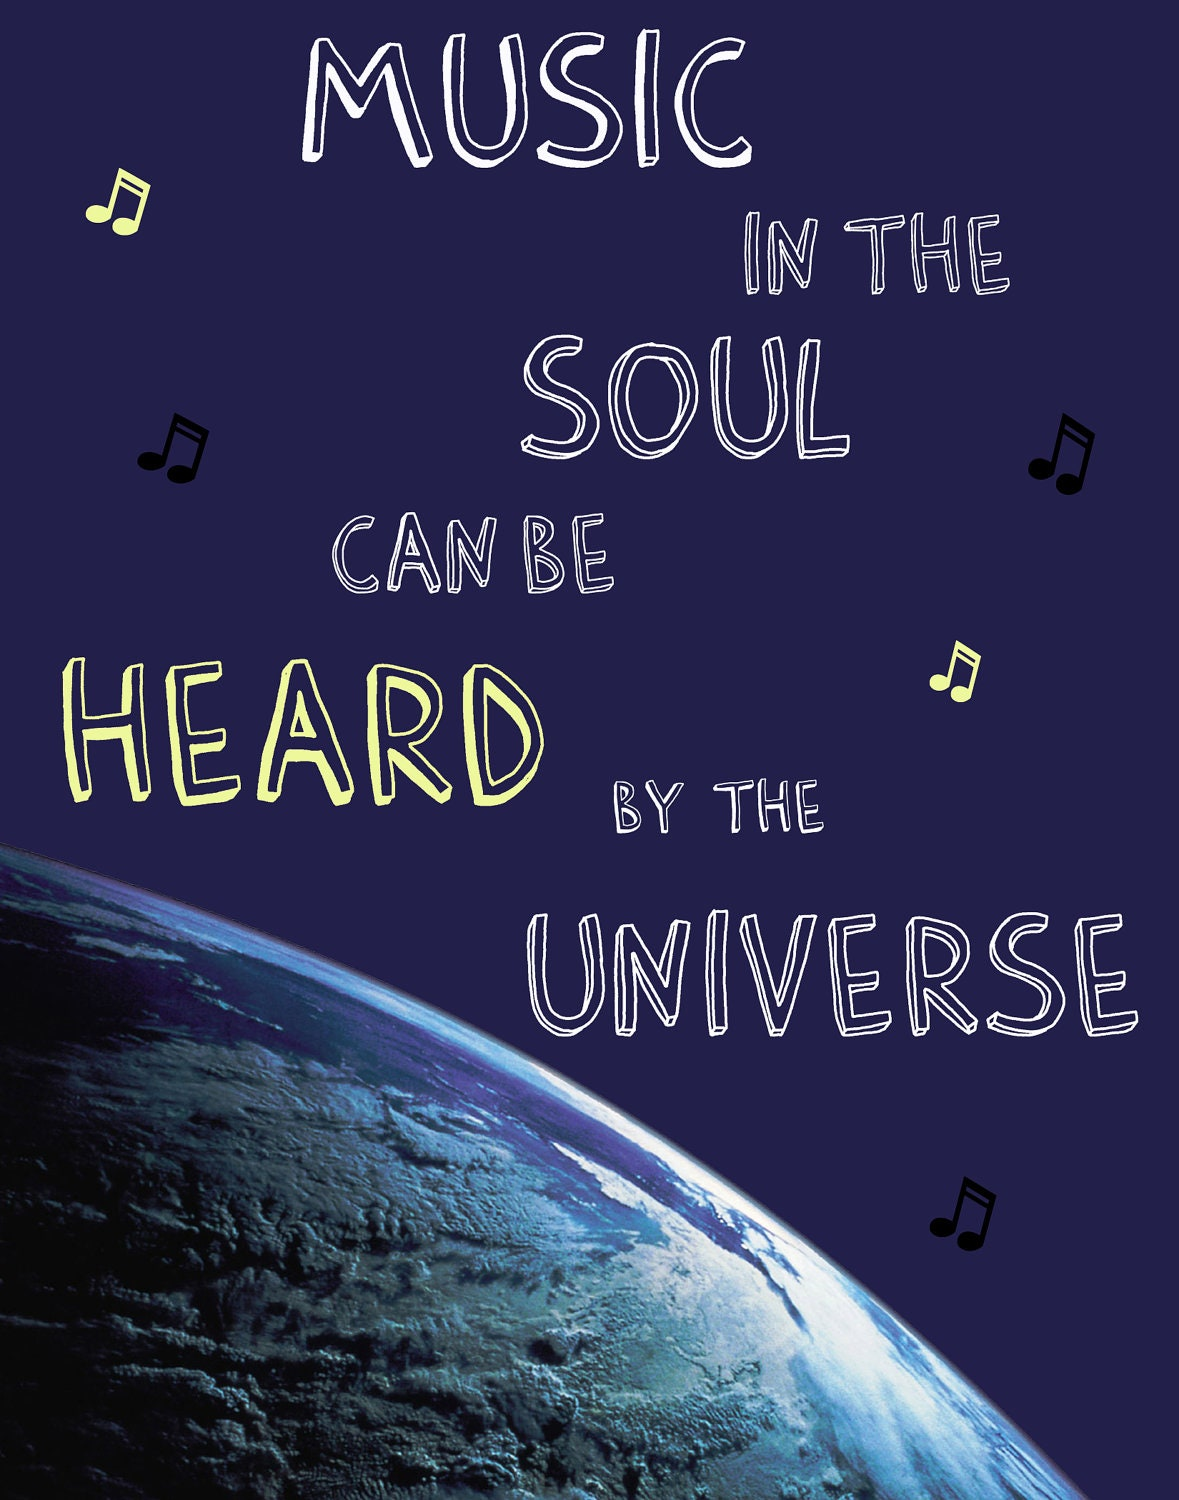 inspirational quotes word art poster music in the soul can